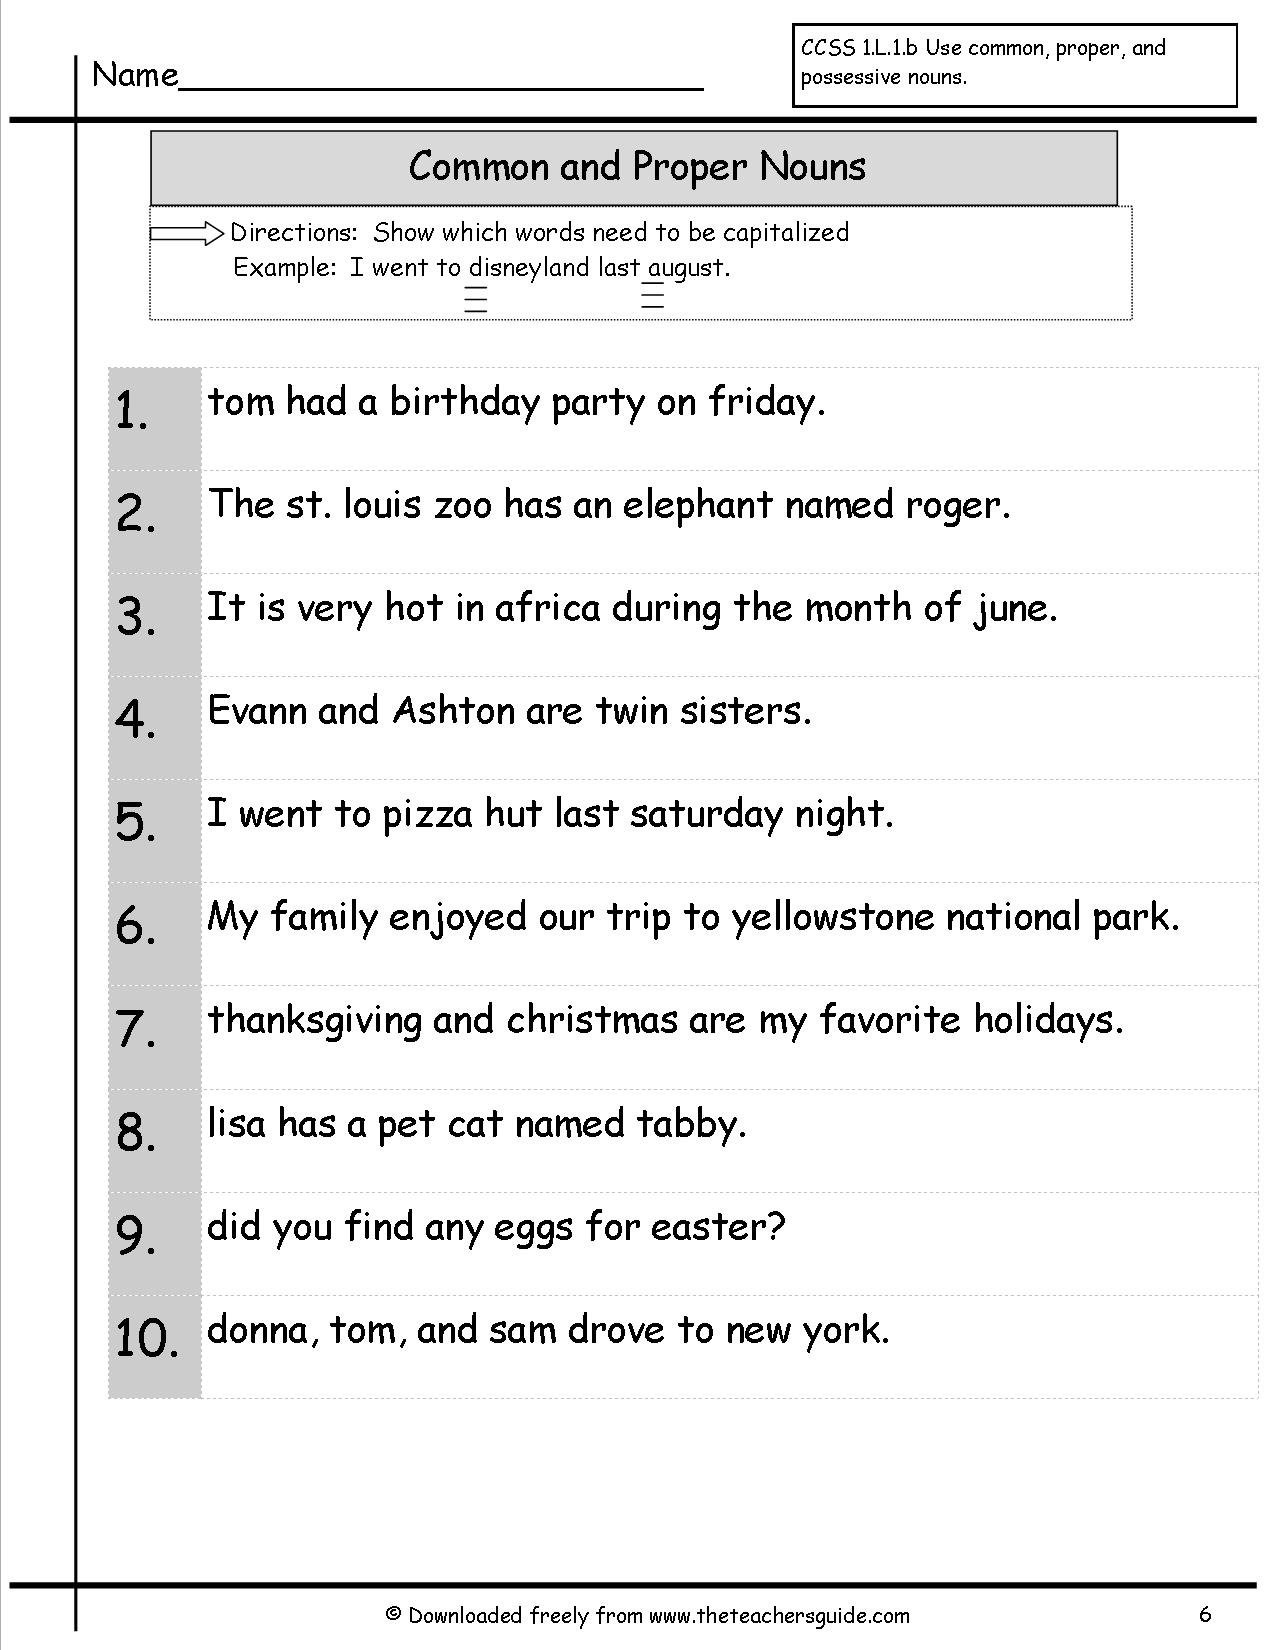 Find Common And Proper Noun Worksheets The Best Worksheets Image